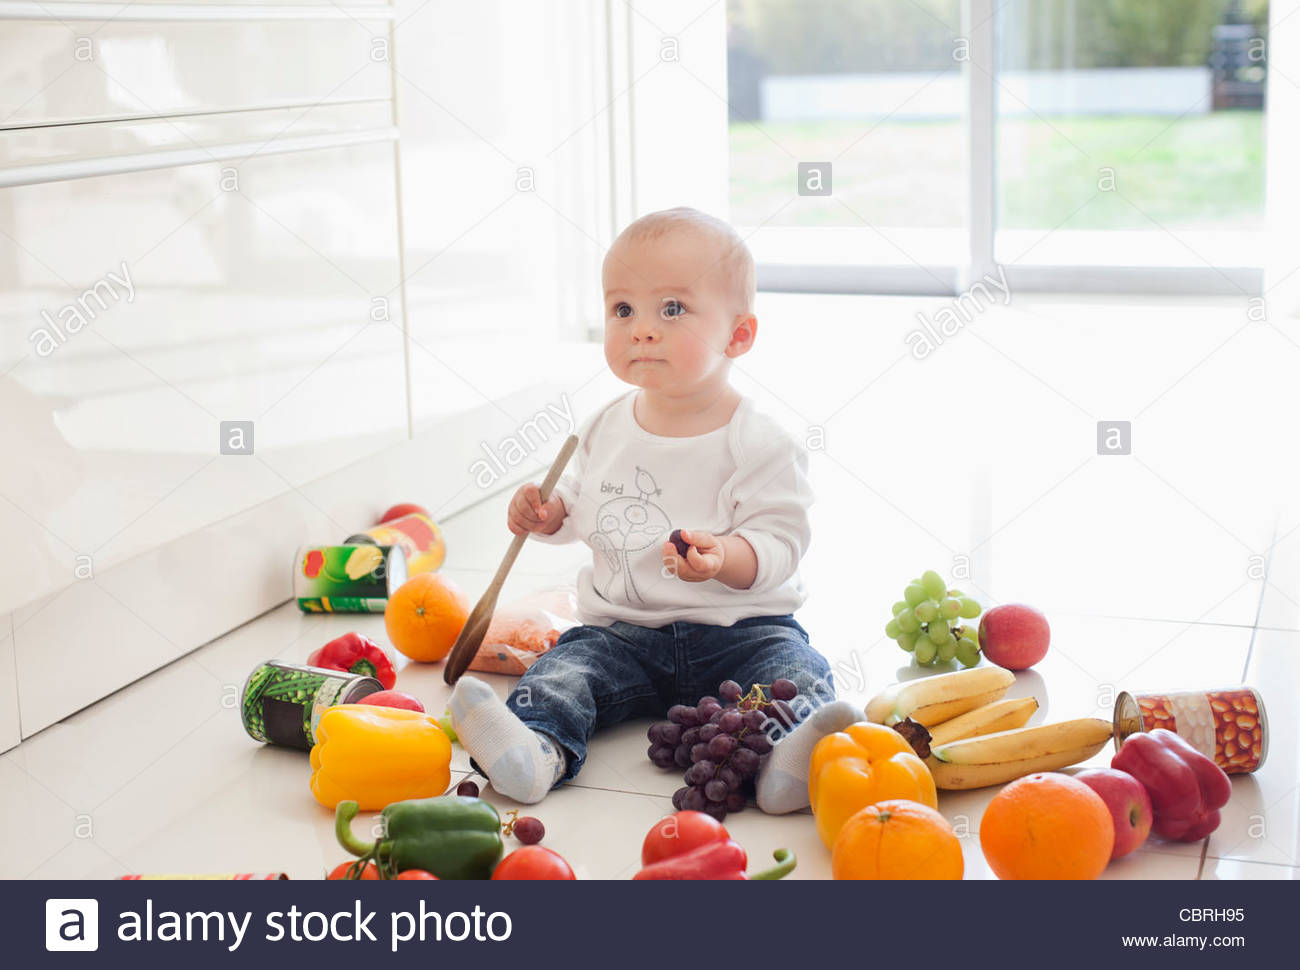 baby making mess on floor with food stock photo royalty free image 41700433 alamy. Black Bedroom Furniture Sets. Home Design Ideas